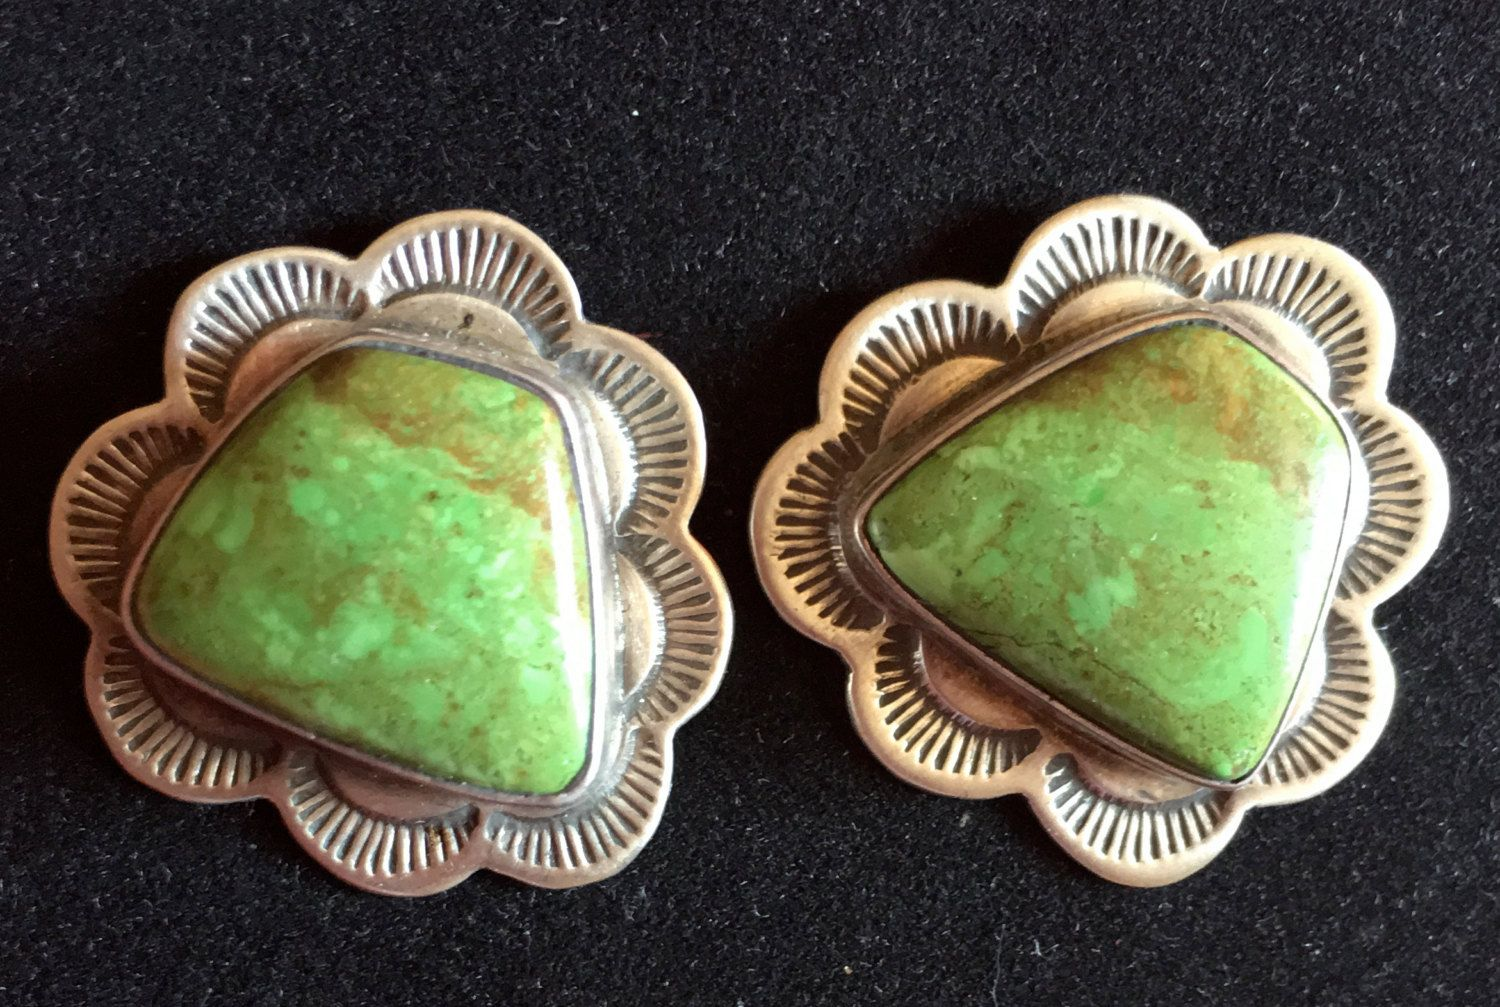 Green Turquoise, Native American Sterling Earrings, Signed, gift box by happytrailsmichelle on Etsy